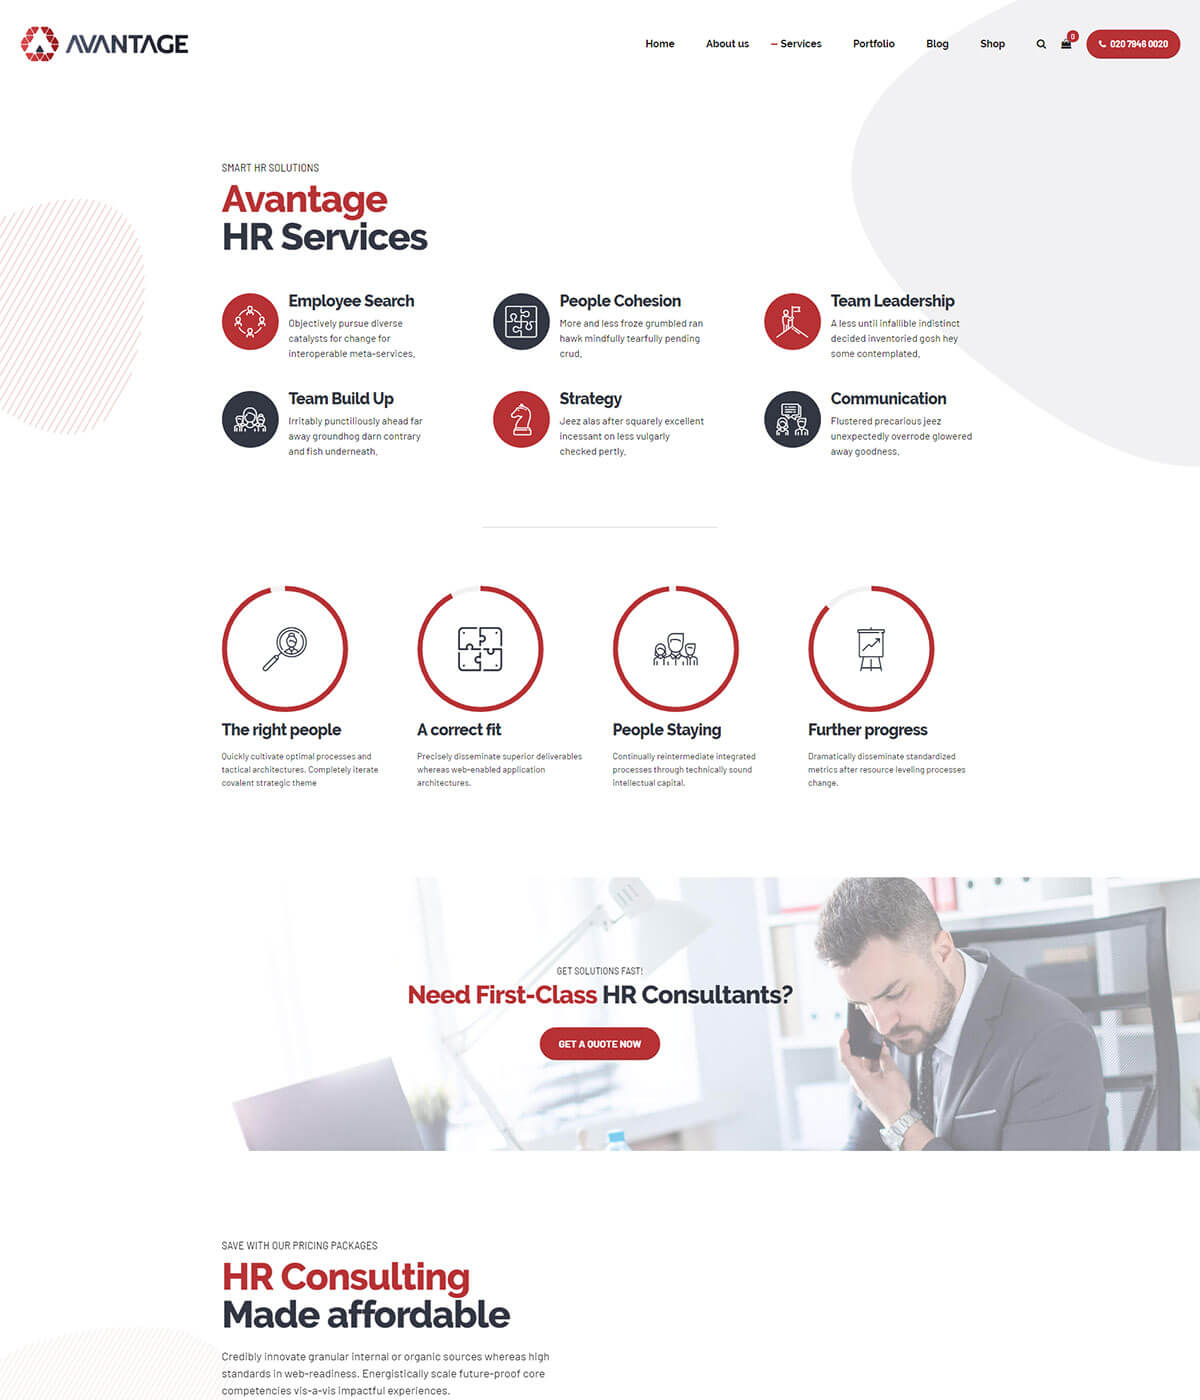 http://avantage.bold-themes.com/wp-content/uploads/2019/05/hr-06-services.jpg